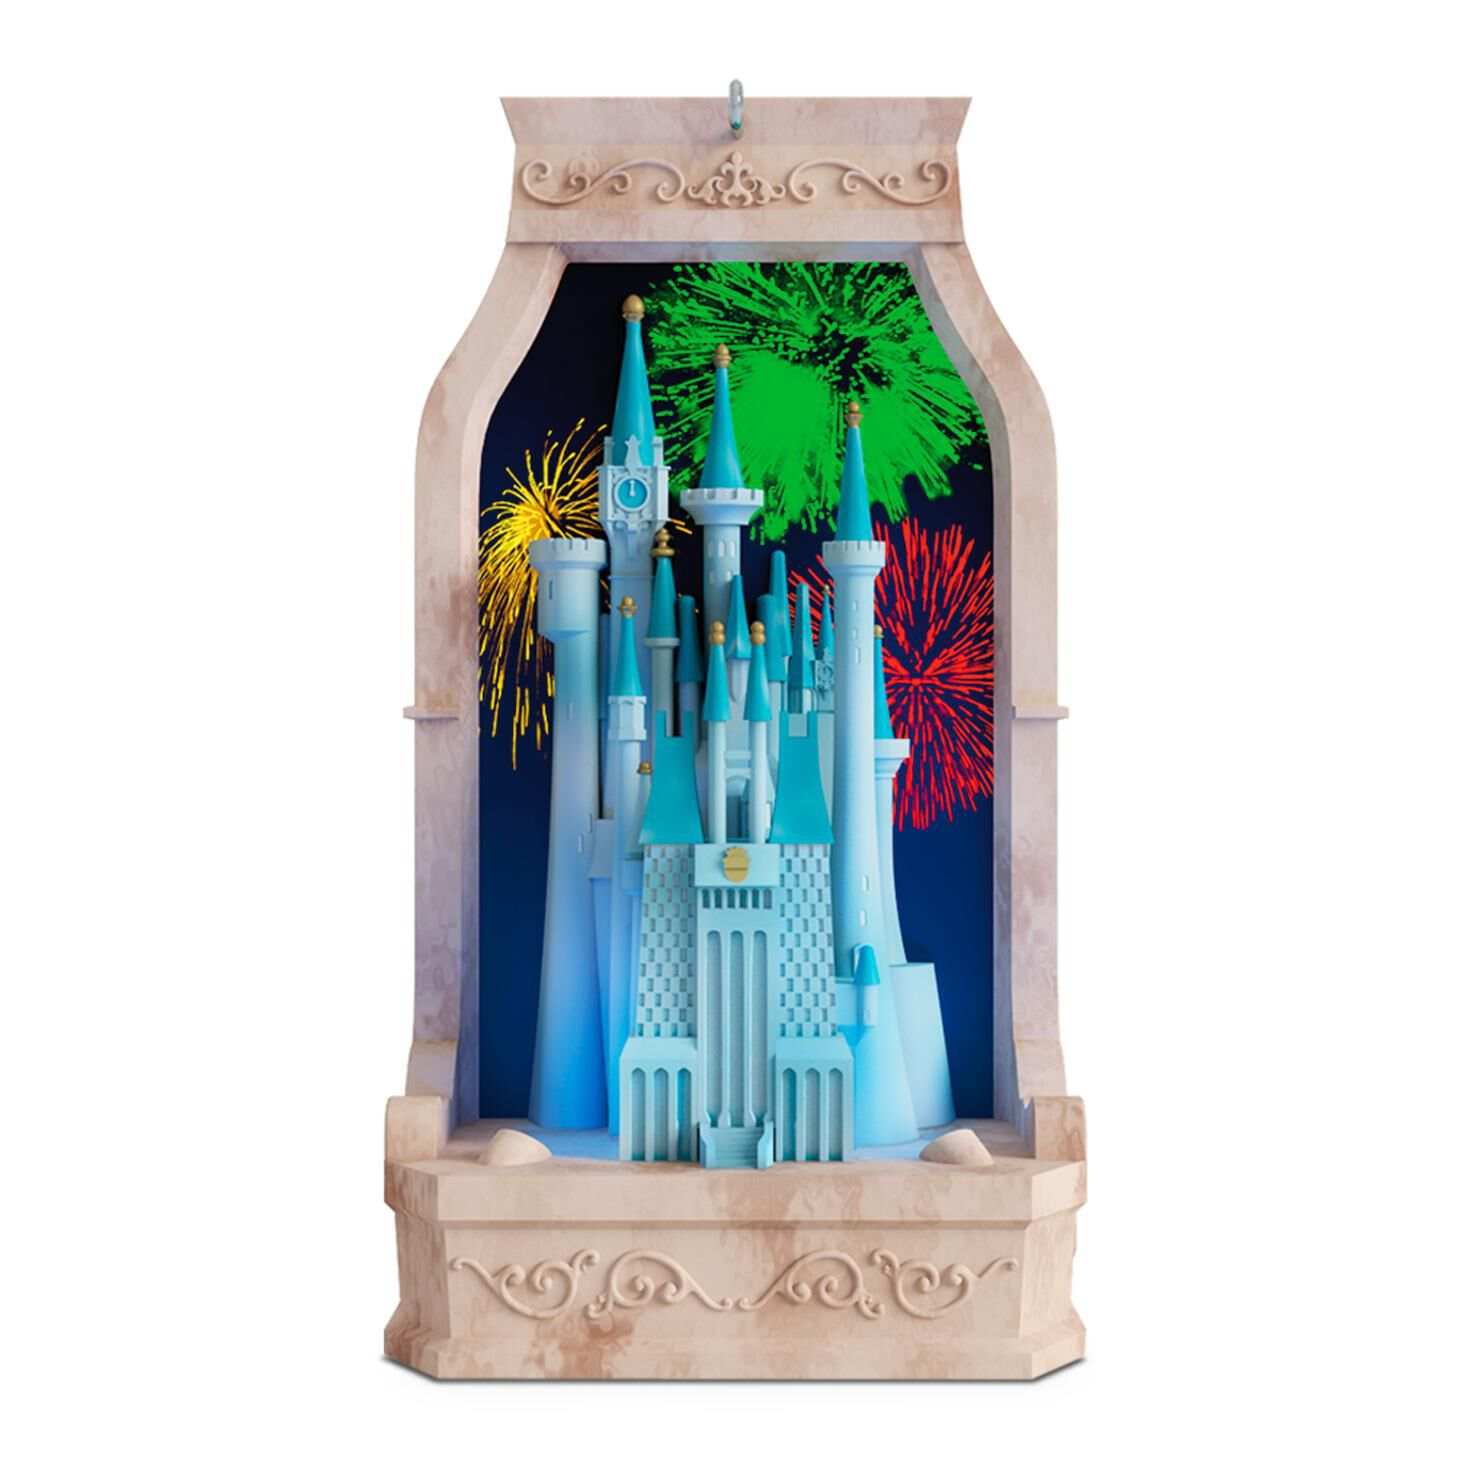 Cinderella S Castle From Disney Musical Ornament With Light Keepsake Ornaments Hallmark